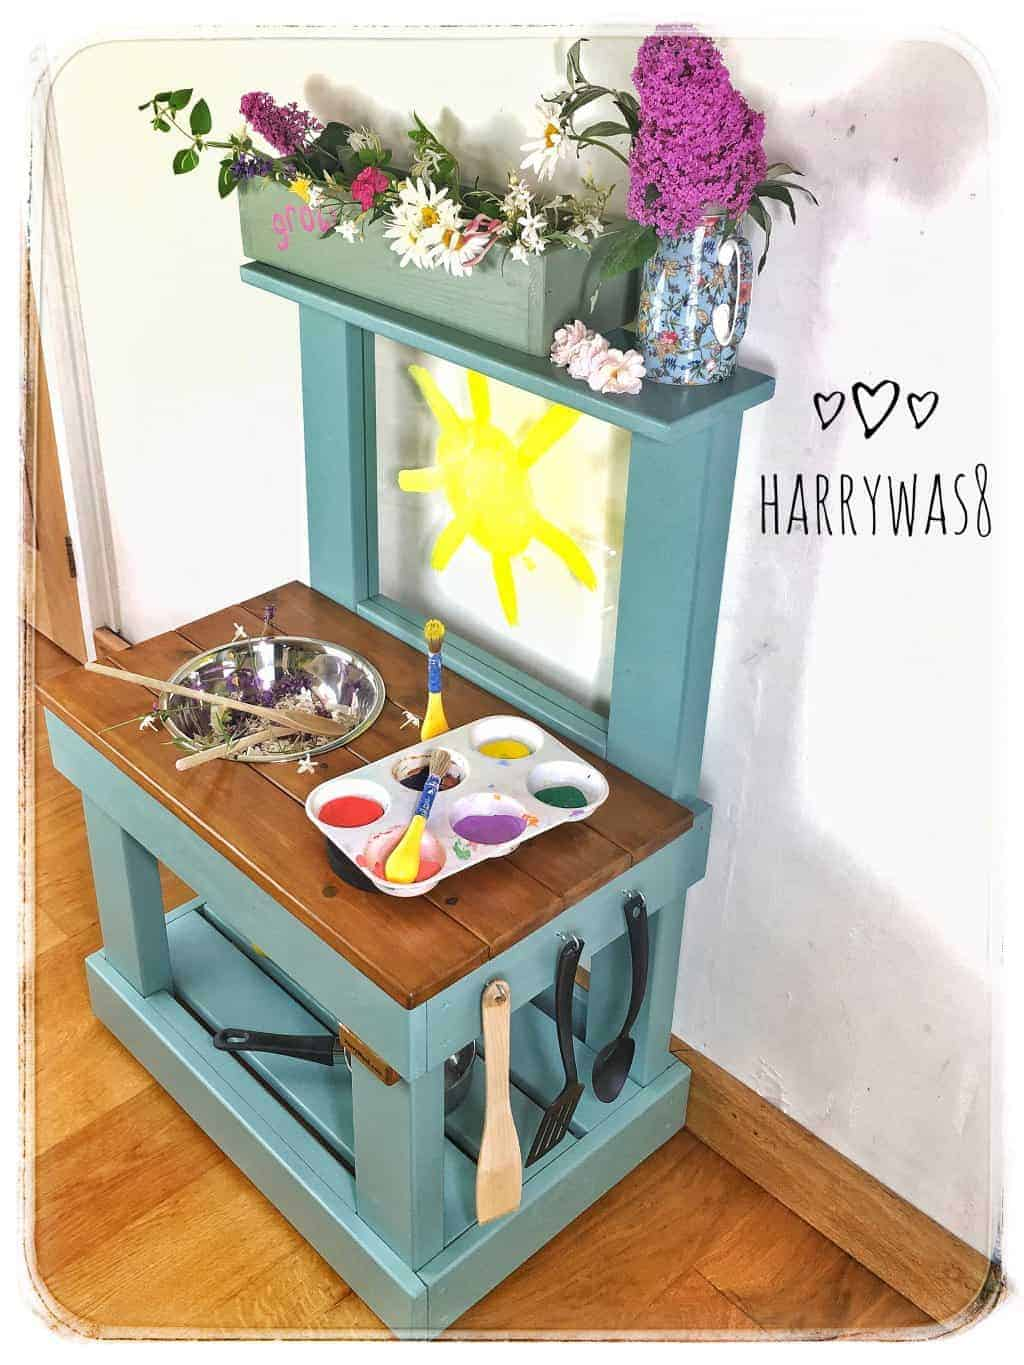 Side view mud kitchen with flowers and art easel